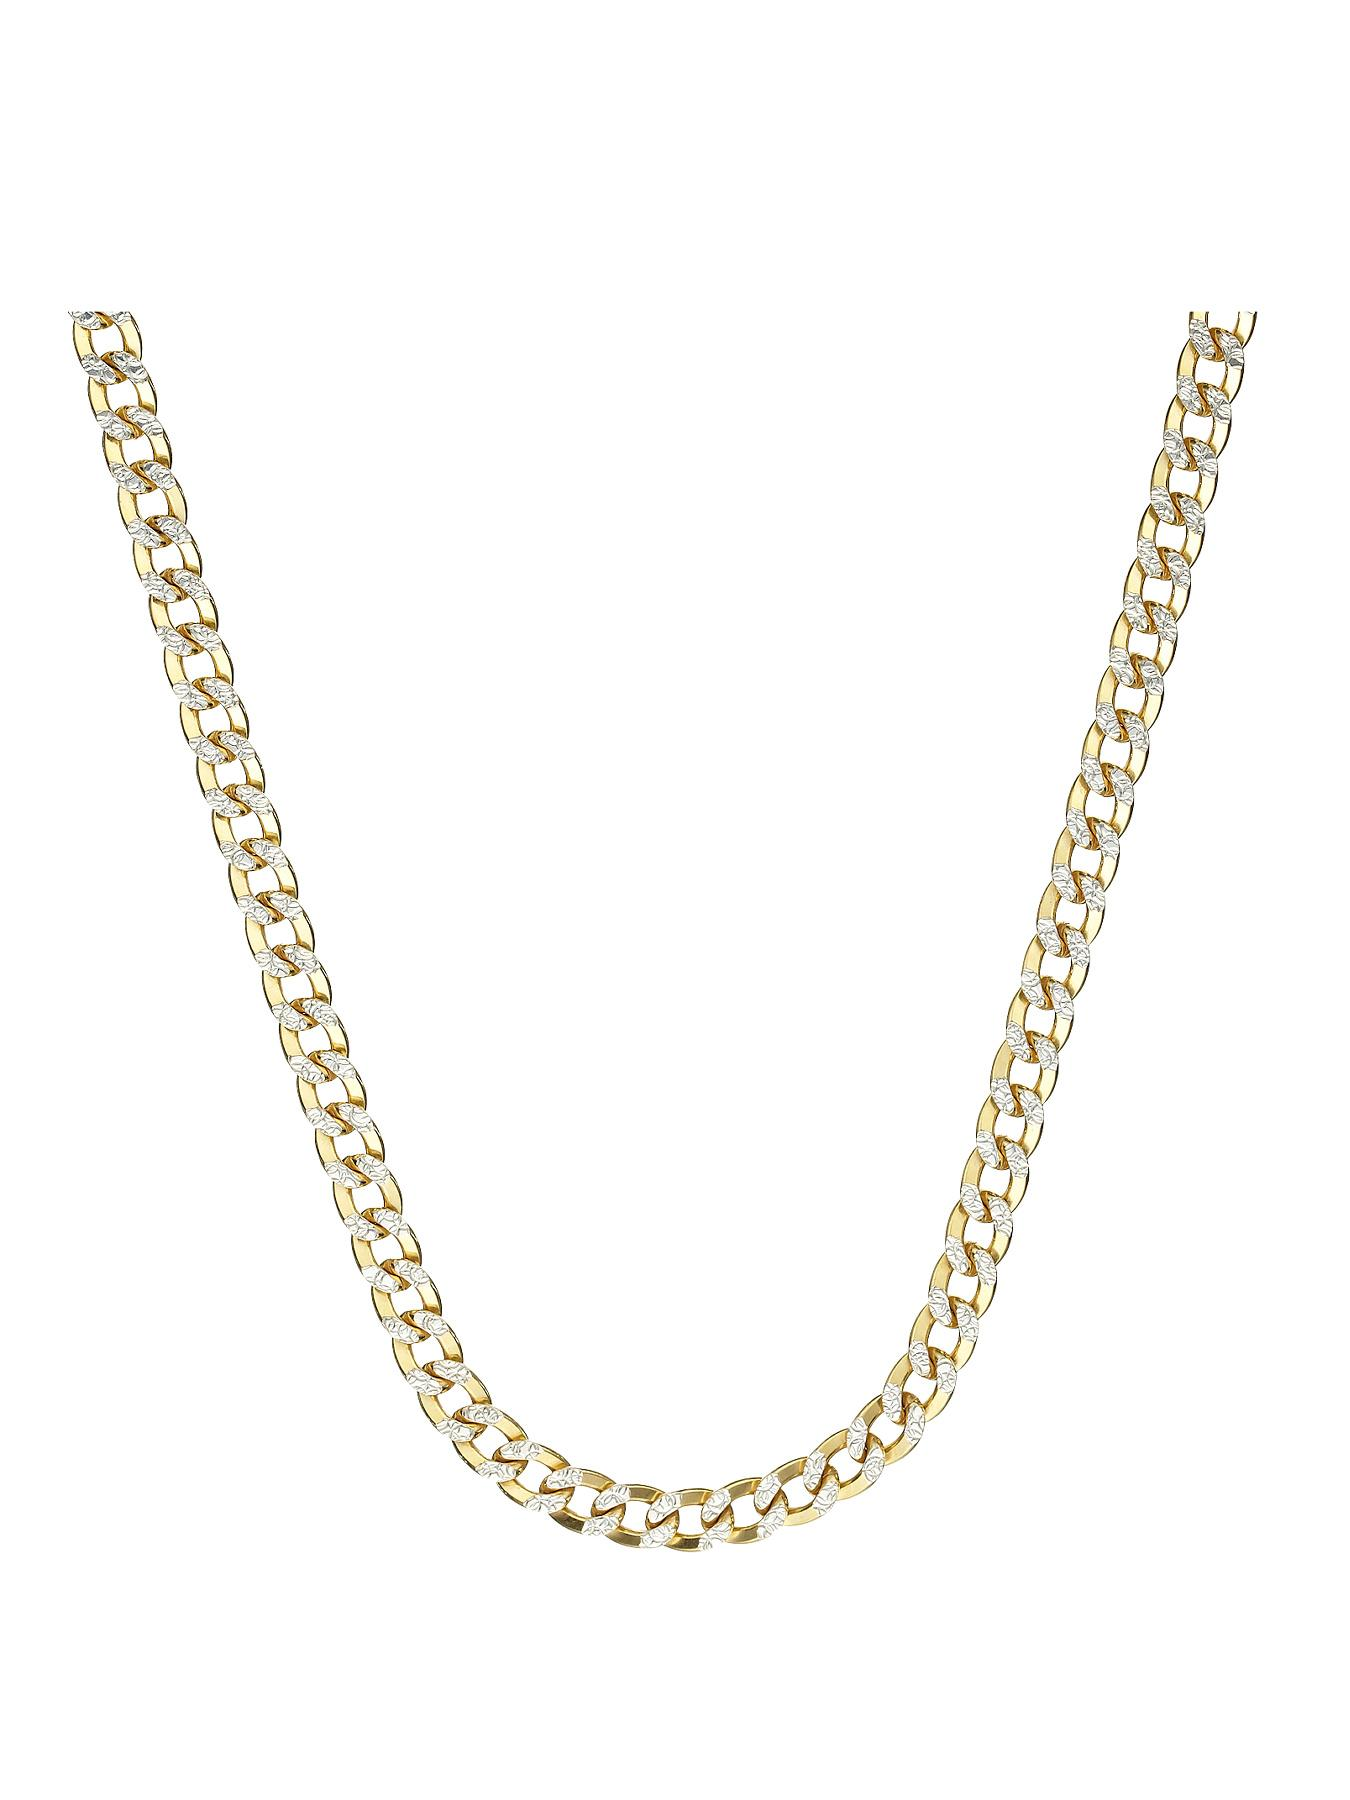 Sterling Silver and Yellow Gold Bonded Pave Curb Chain